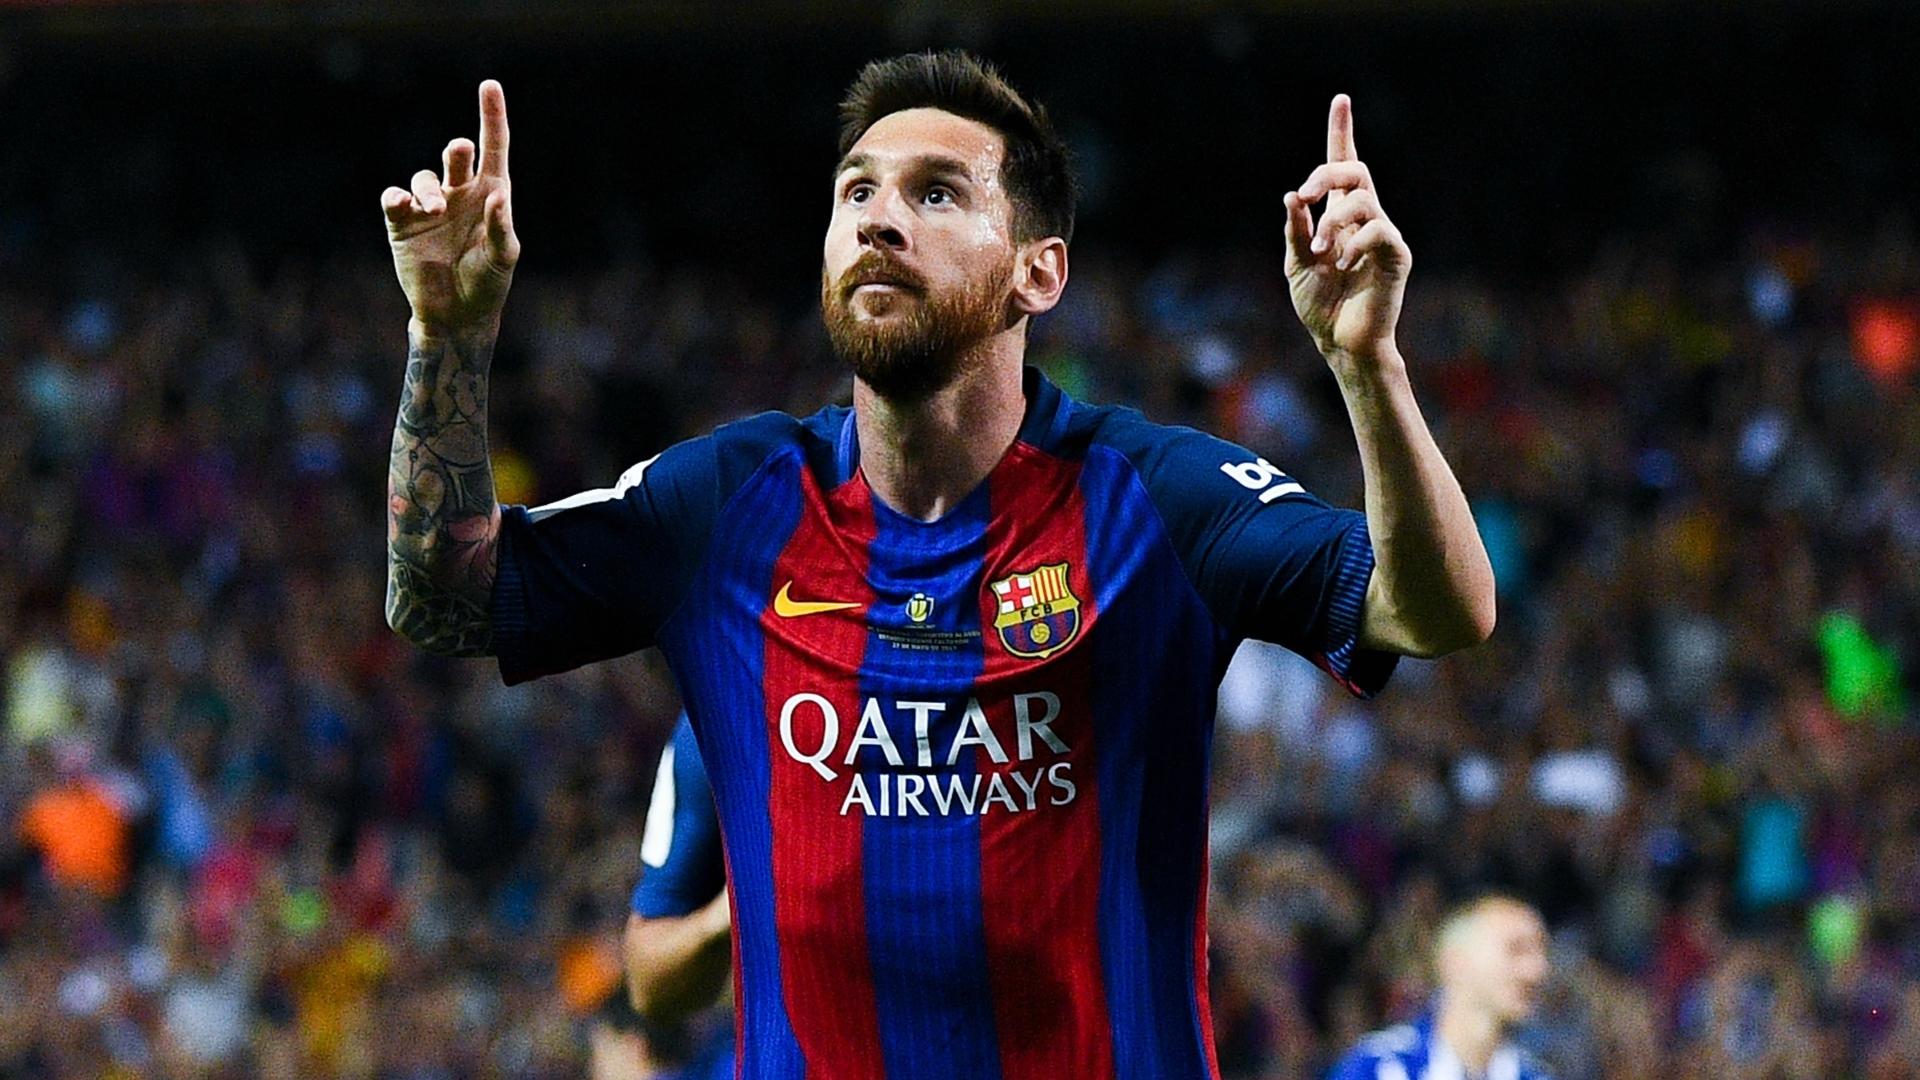 One of the world's top players, Messi never officially expressed any intention of leaving his childhood club of Barcelona.